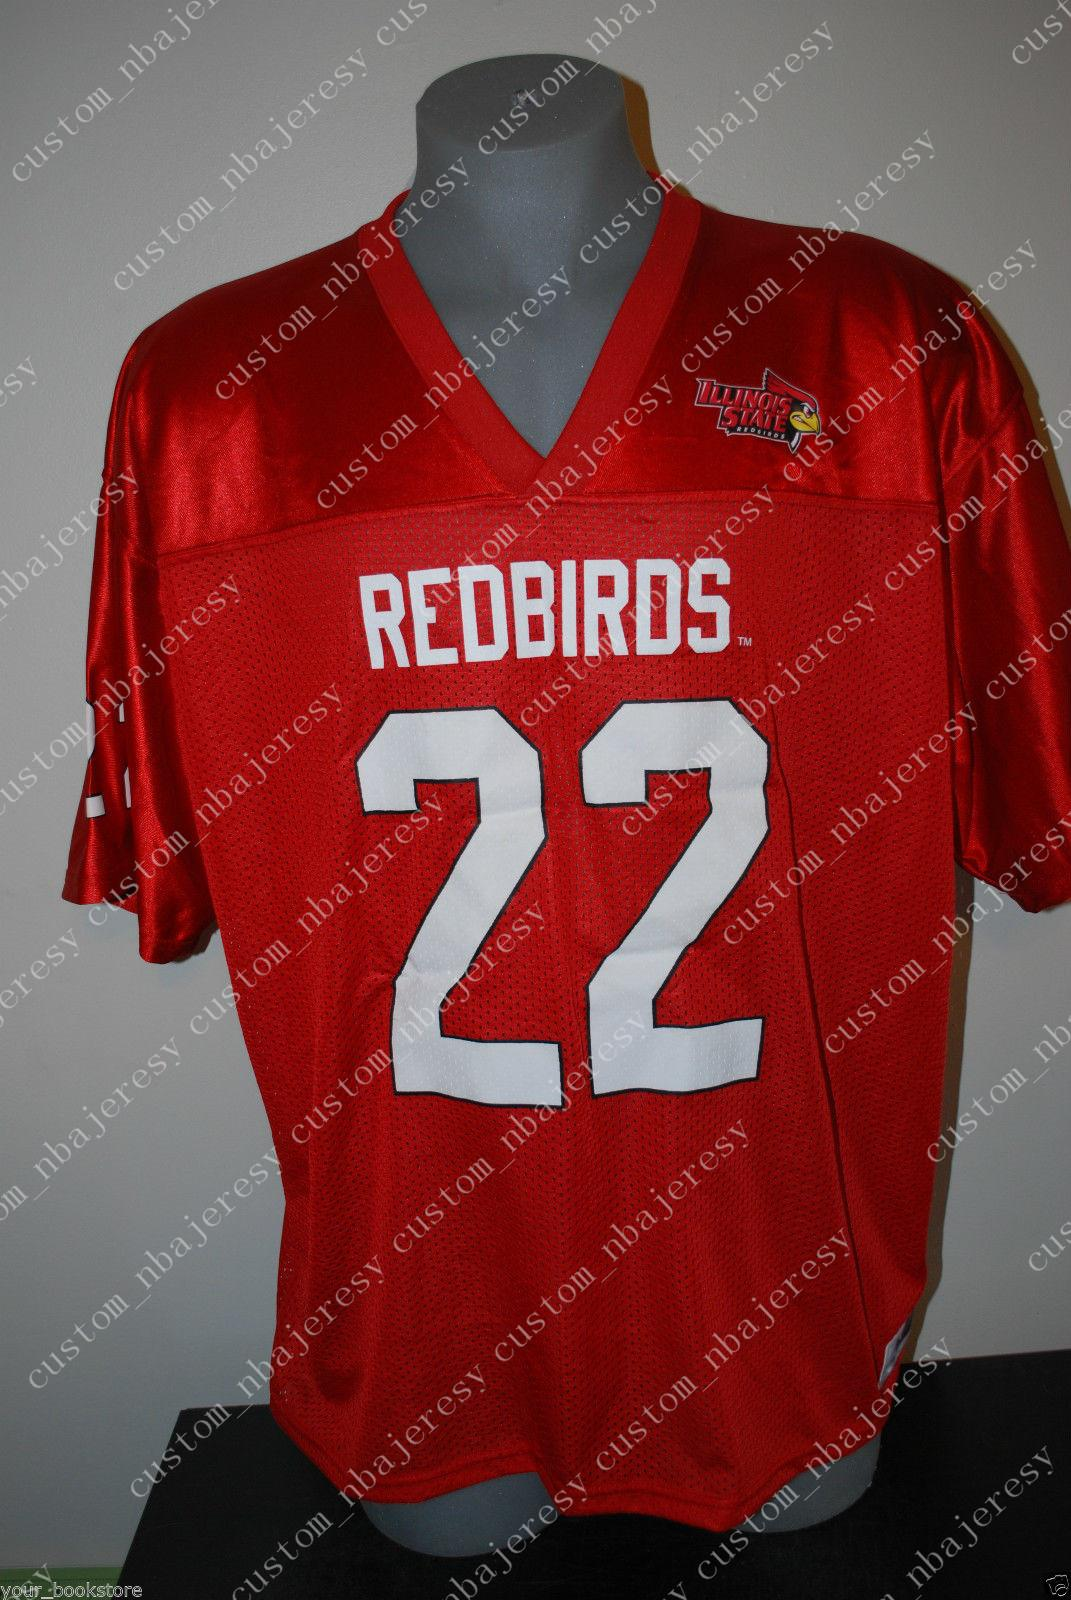 pretty nice 8c5b3 bce0c Cheap custom New Ezra Thompson Illinois State Redbirds College NCAA  Football Jerseys Customized Any name number Stitched Jersey XS-5XL